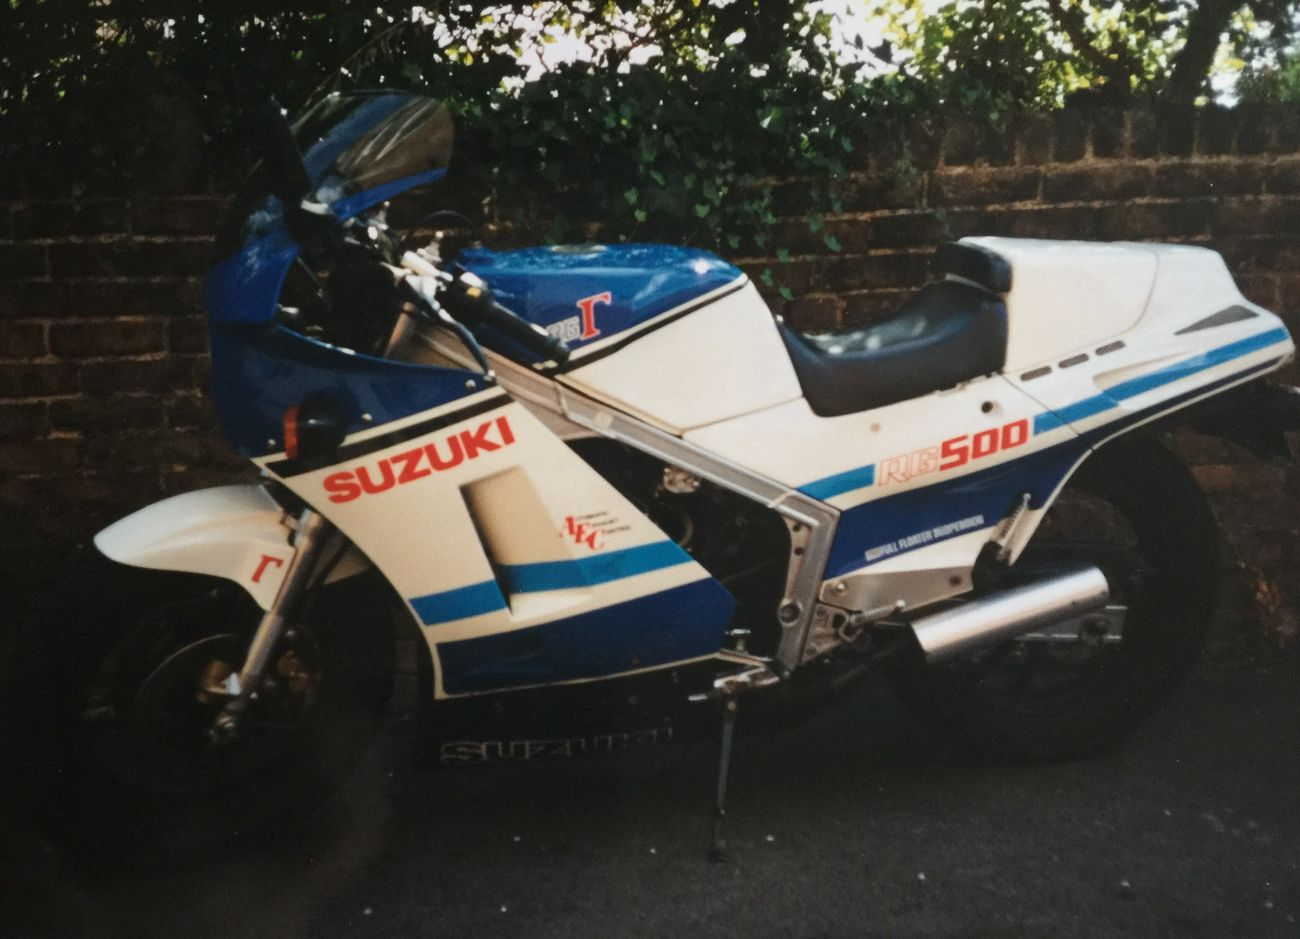 Rg500 Suzuki Teddington Lock Stanley Rd Motorcycles